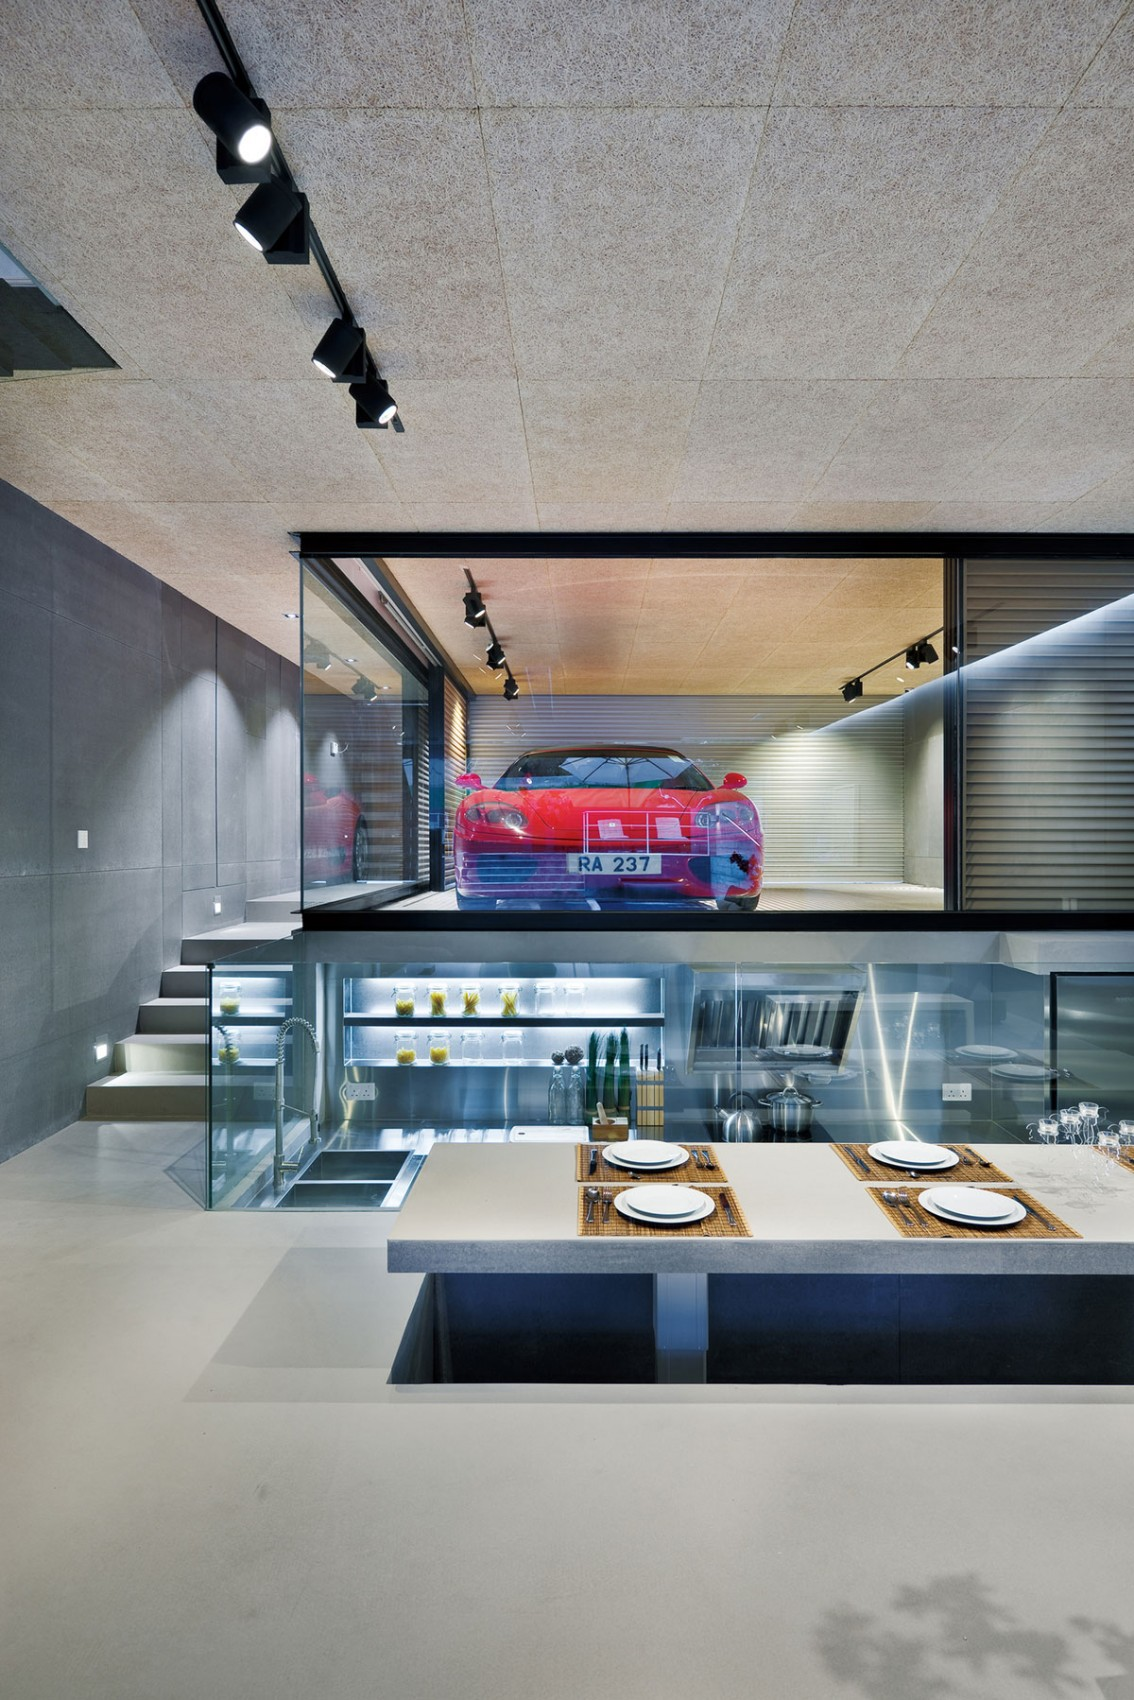 Elevated Dining Table - Modern remodel in hong kong with a ferrari as focus